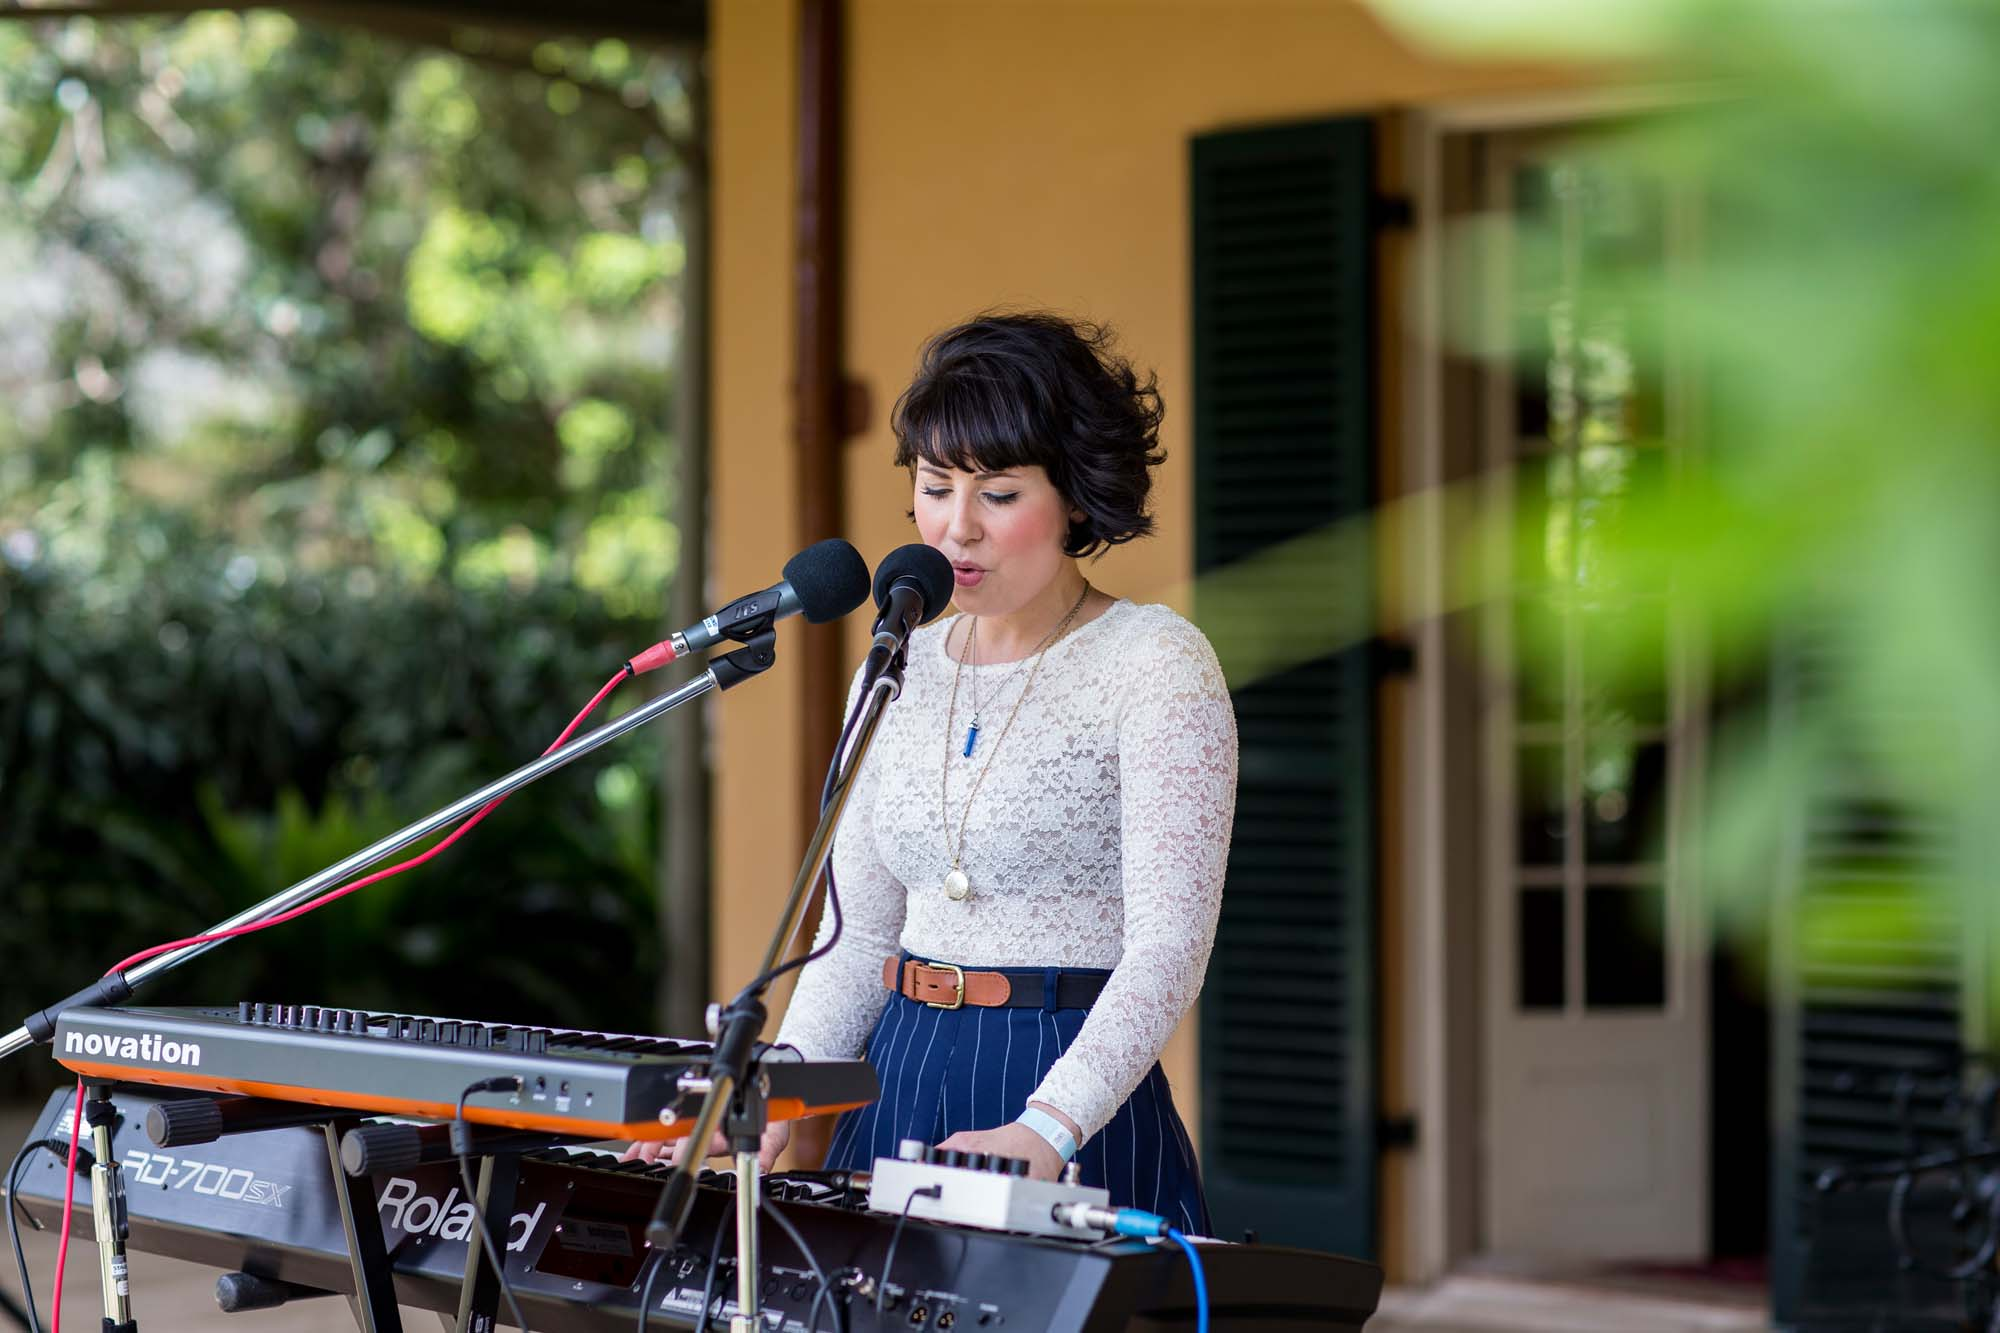 Roll on long lunch on the lawn at Vaucluse House, Sydney on Sunday 3 November 2013.Photo Credit :- James Horan